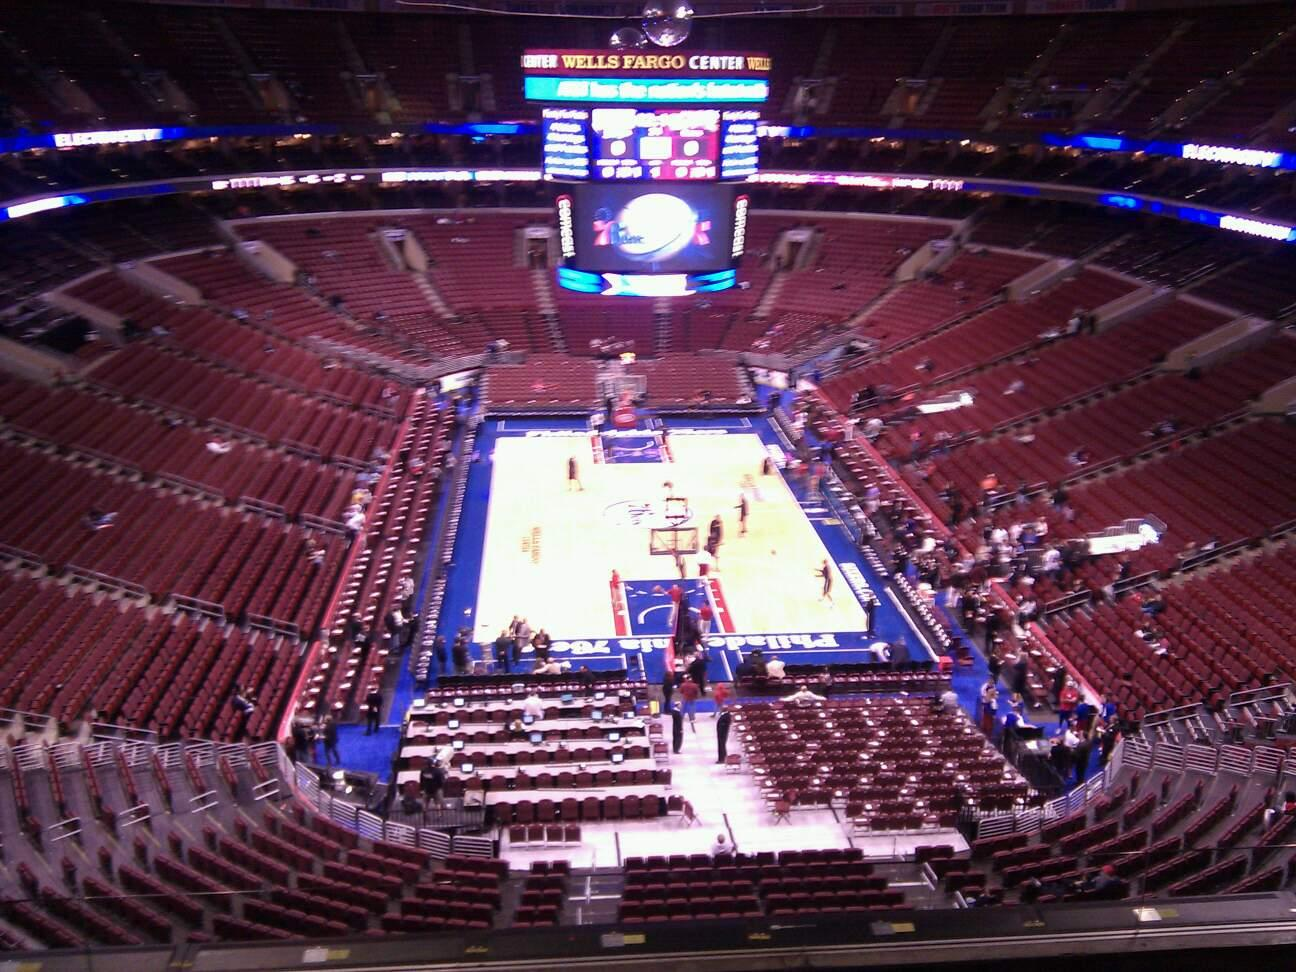 Wells Fargo Center Section 219 Row 6 Seat 7